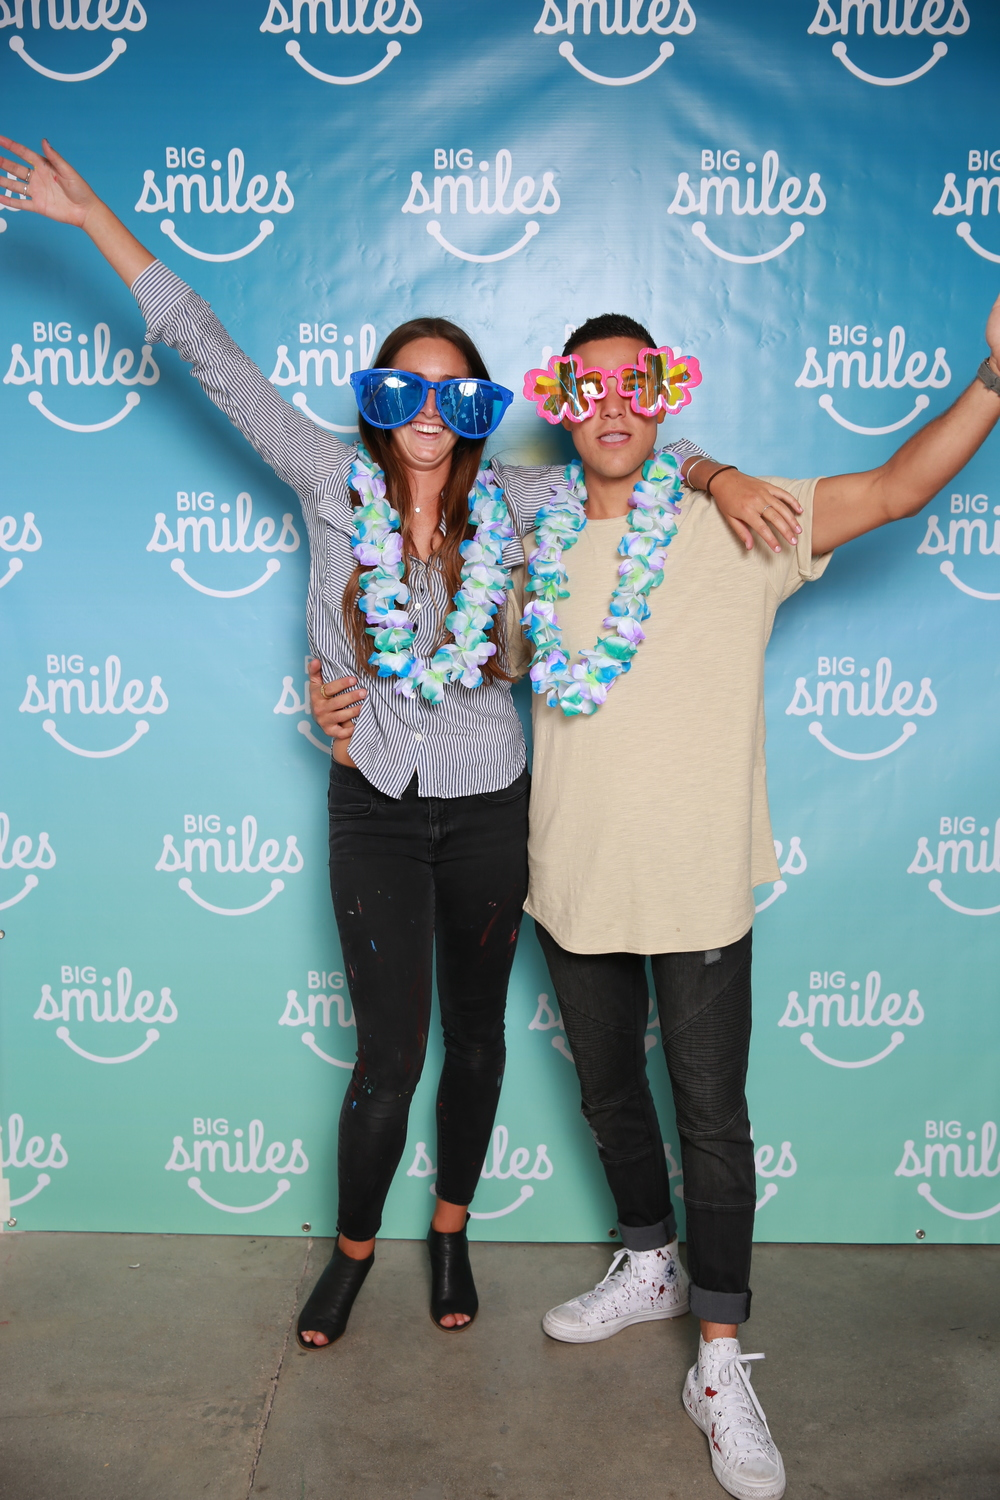 7.30.16 Big Smiles Program-182.JPG